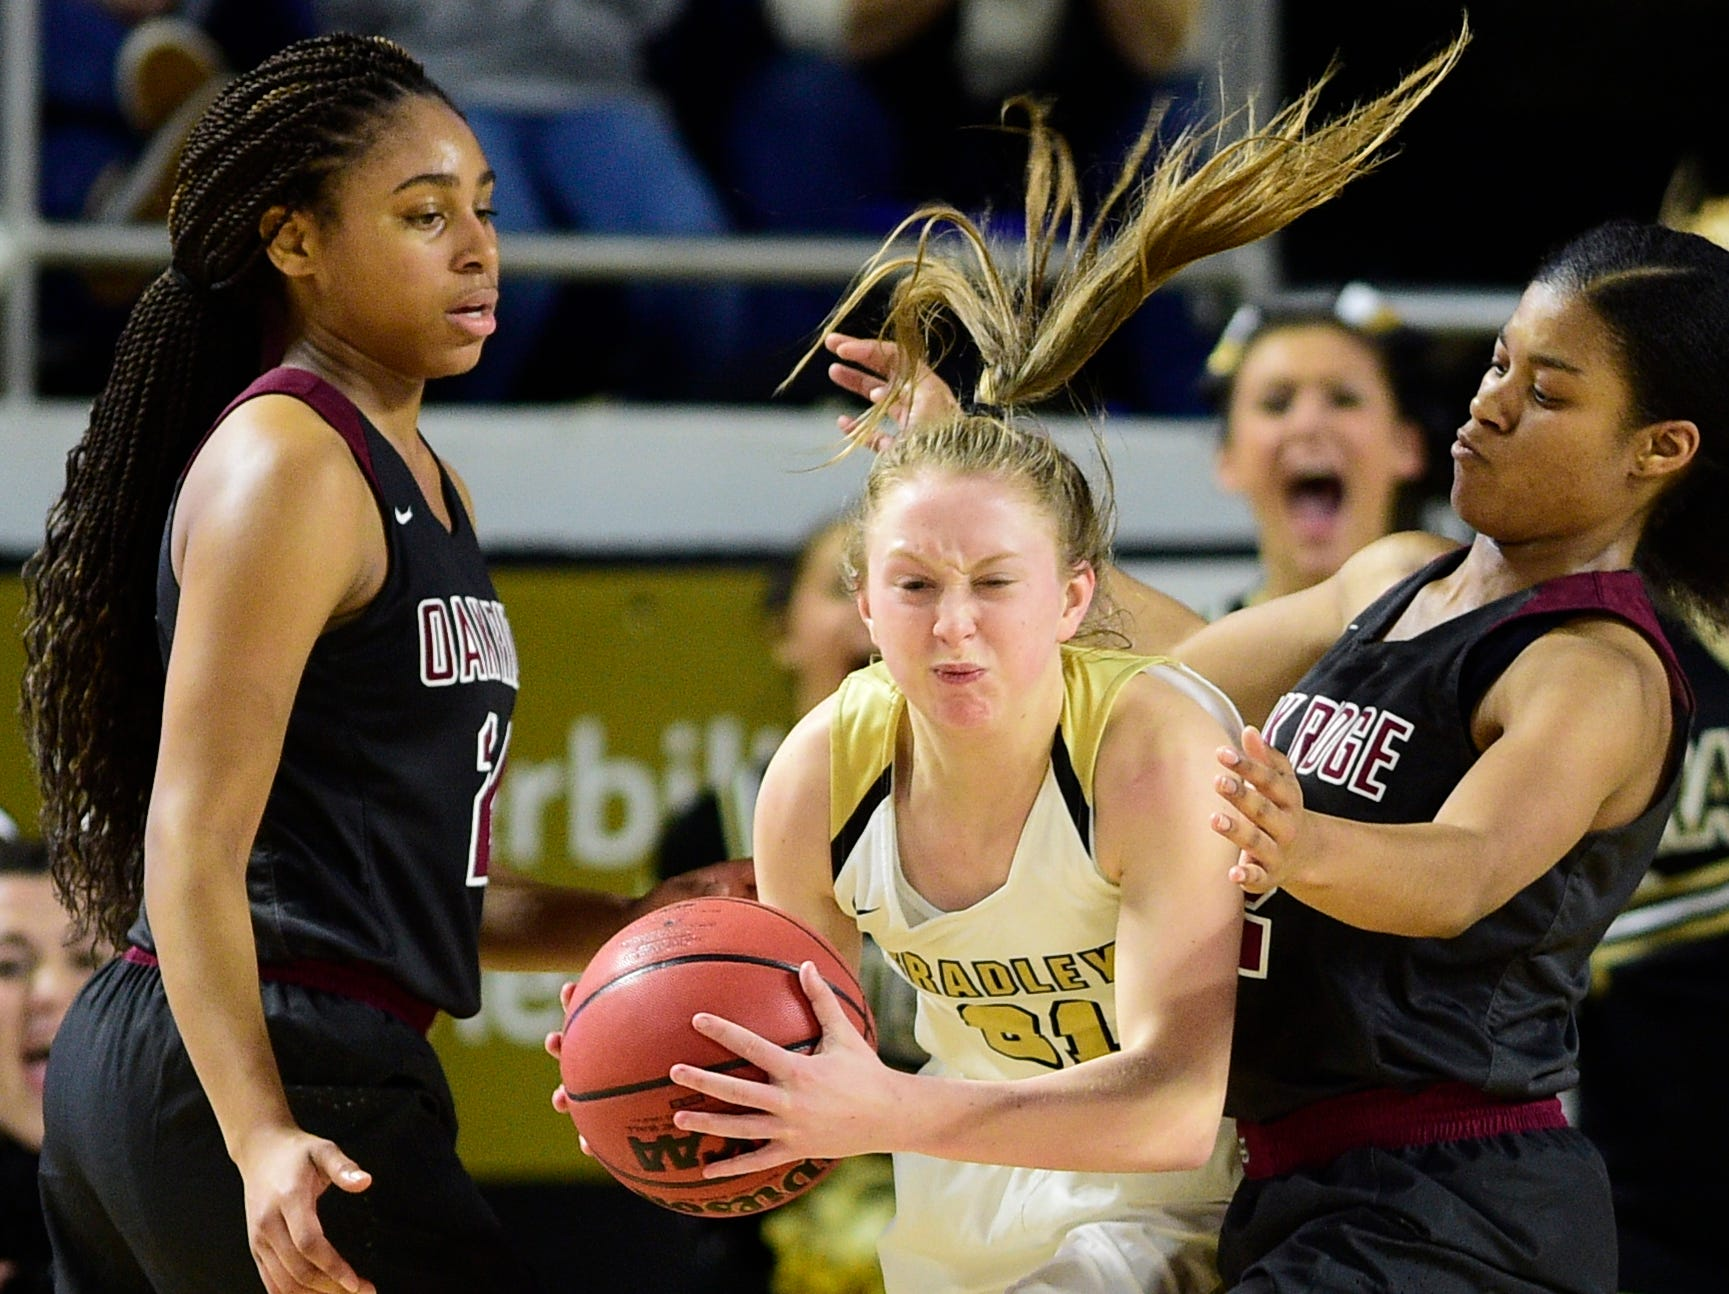 Bradley Central's Cambree Mayo (21) grabs the rebound past Oak Ridge's Jada Guinn (24) and Oak Ridge's Shatyrah Copeland (22) during a game between Oak Ridge and Bradley Central at the TSSAA girls state tournament at the Murphy Center in Murfreesboro, Tennessee on Friday, March 8, 2019.